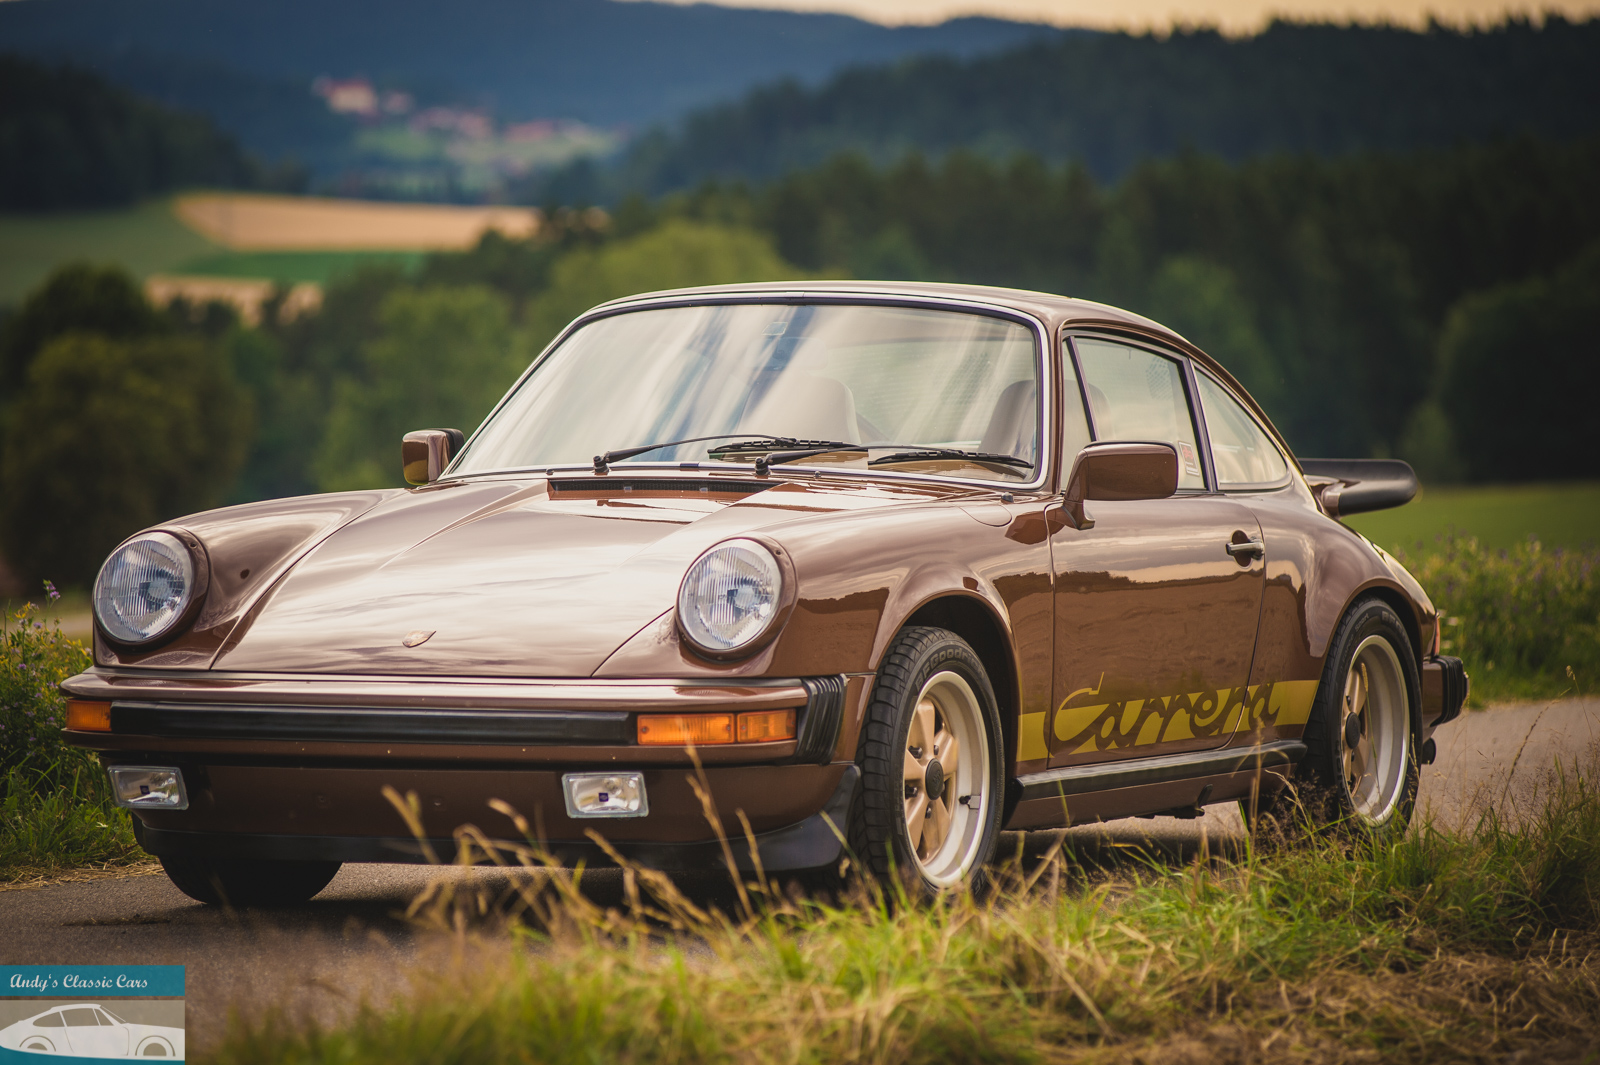 Porsche 911 US-Carrera Coupe